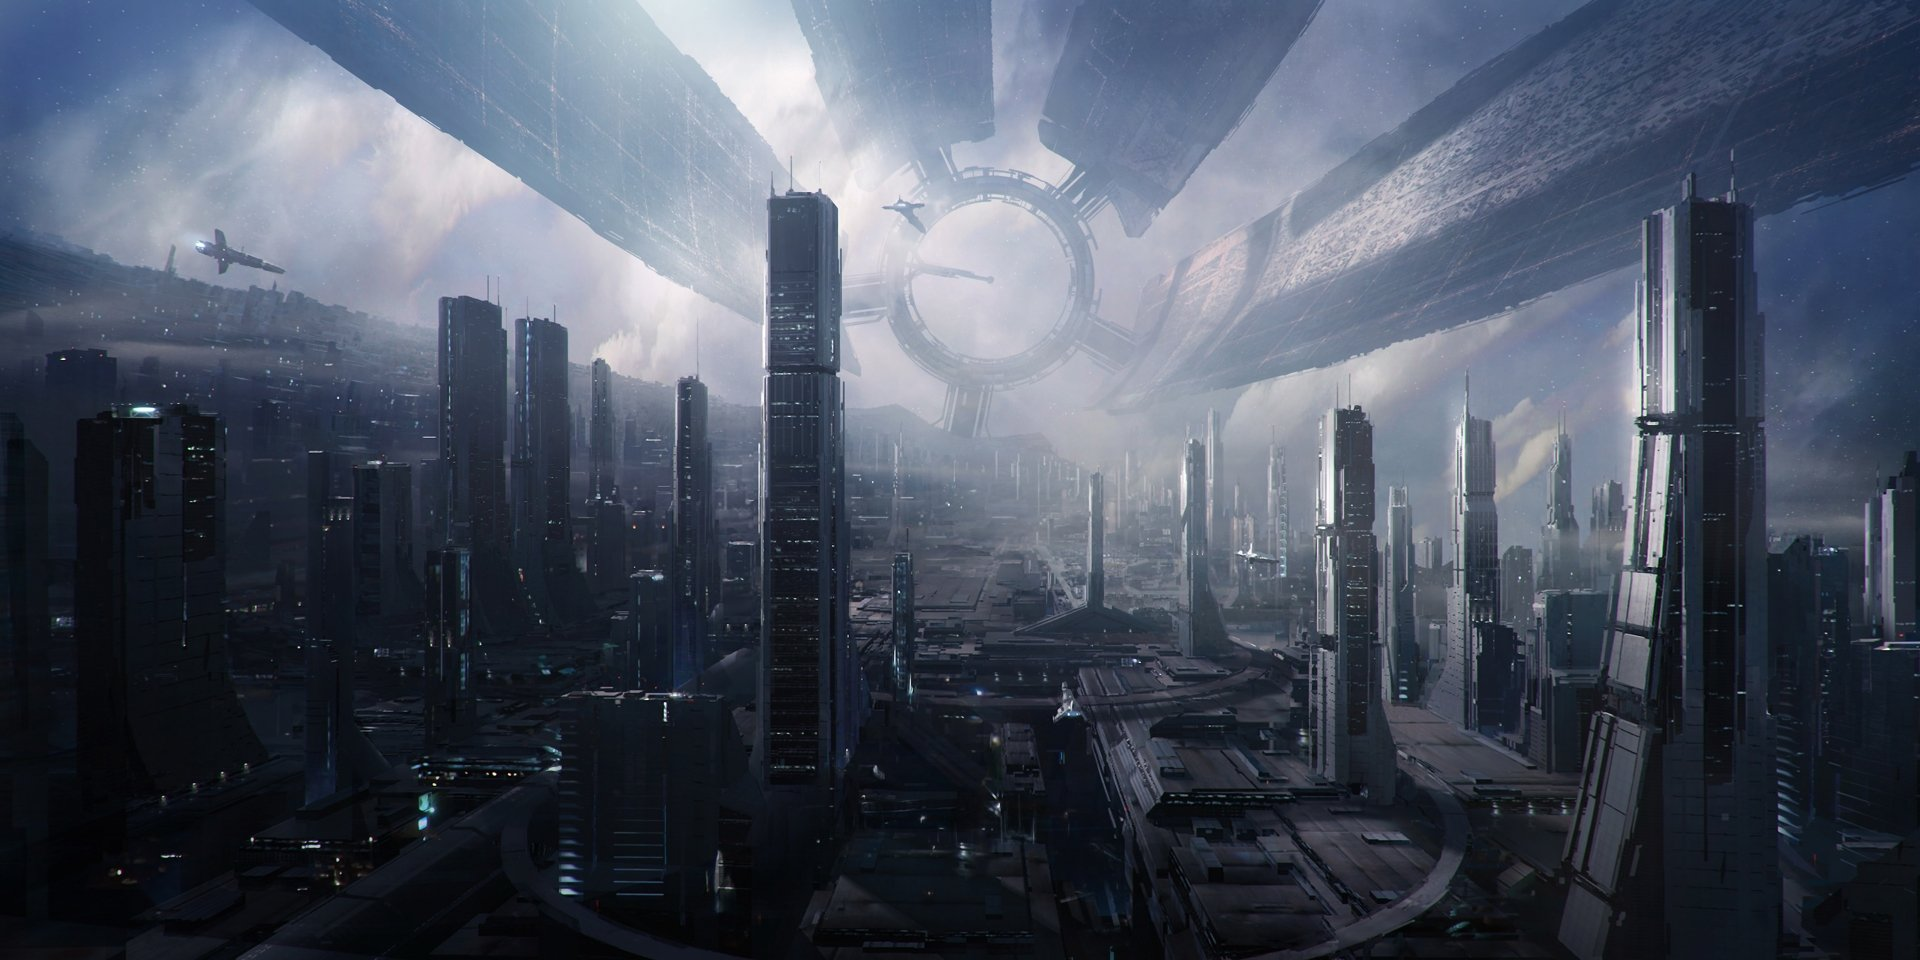 183 Mass Effect 2 Hd Wallpapers Background Images Wallpaper Abyss